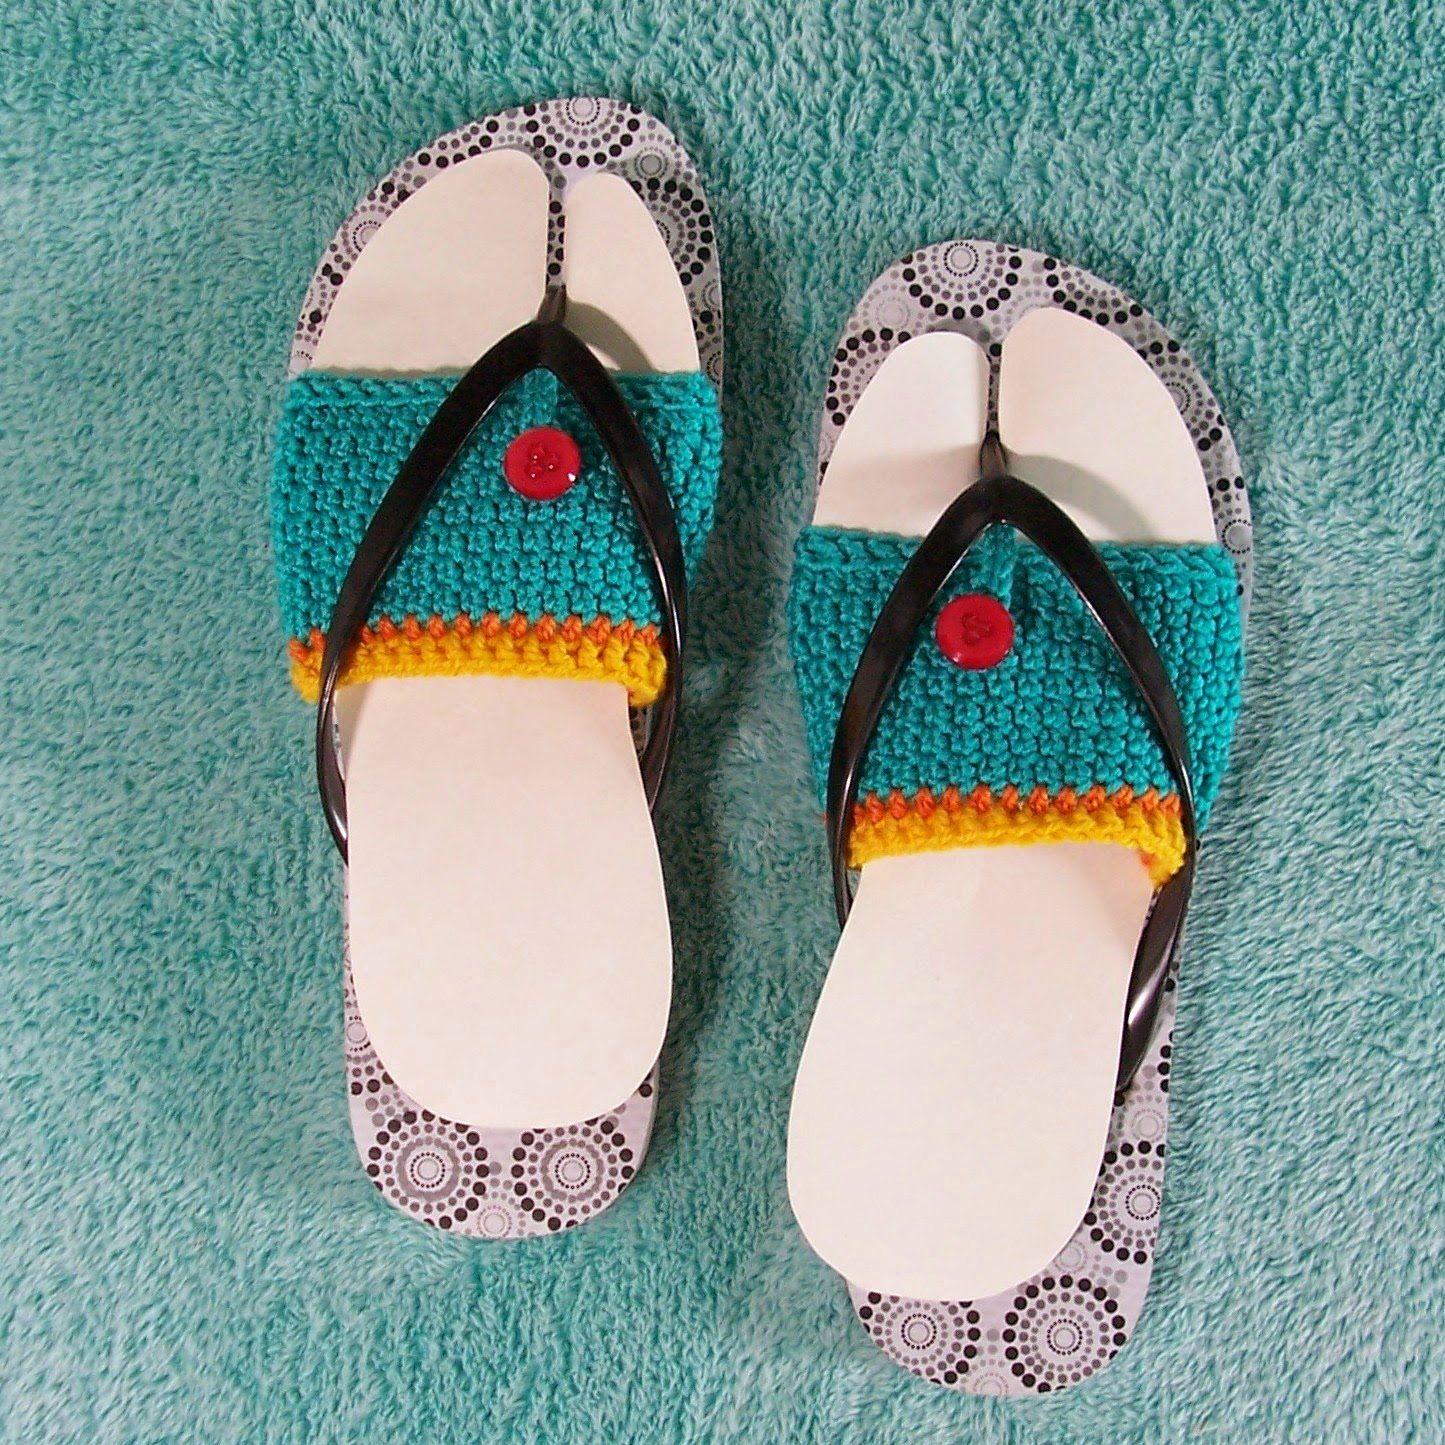 Crochet Patterns Using Flip Flops : crochet flip flops